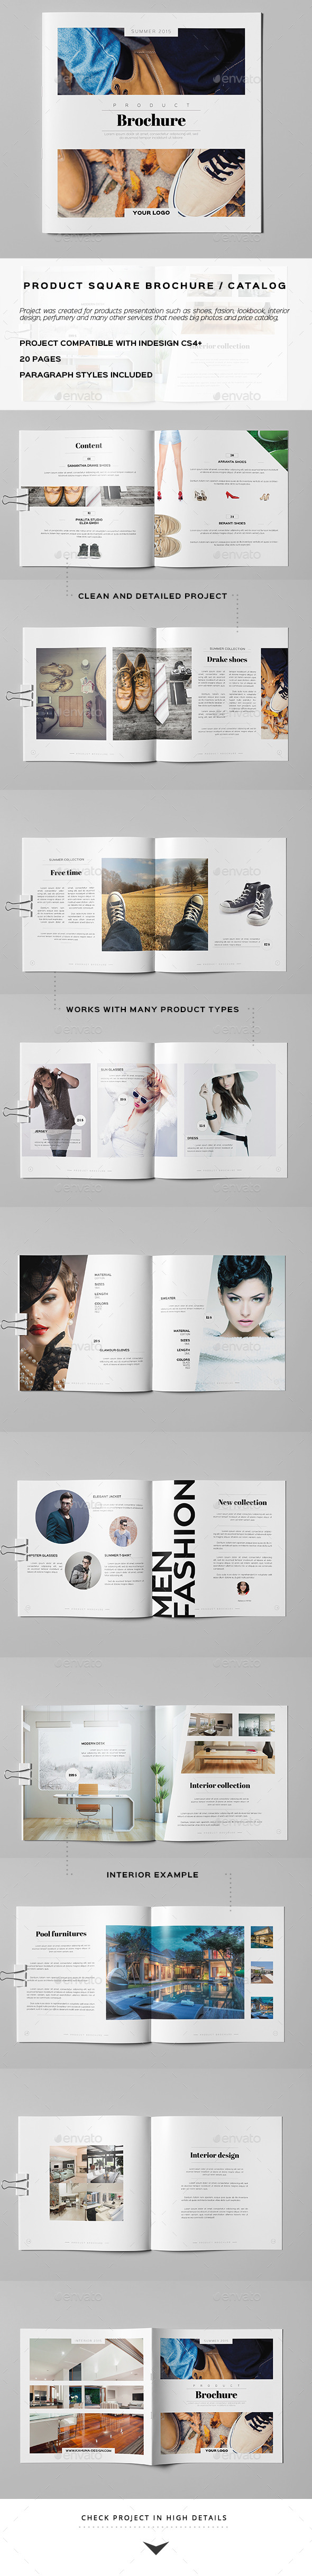 GraphicRiver Product Square Brochure Catalog 10509207